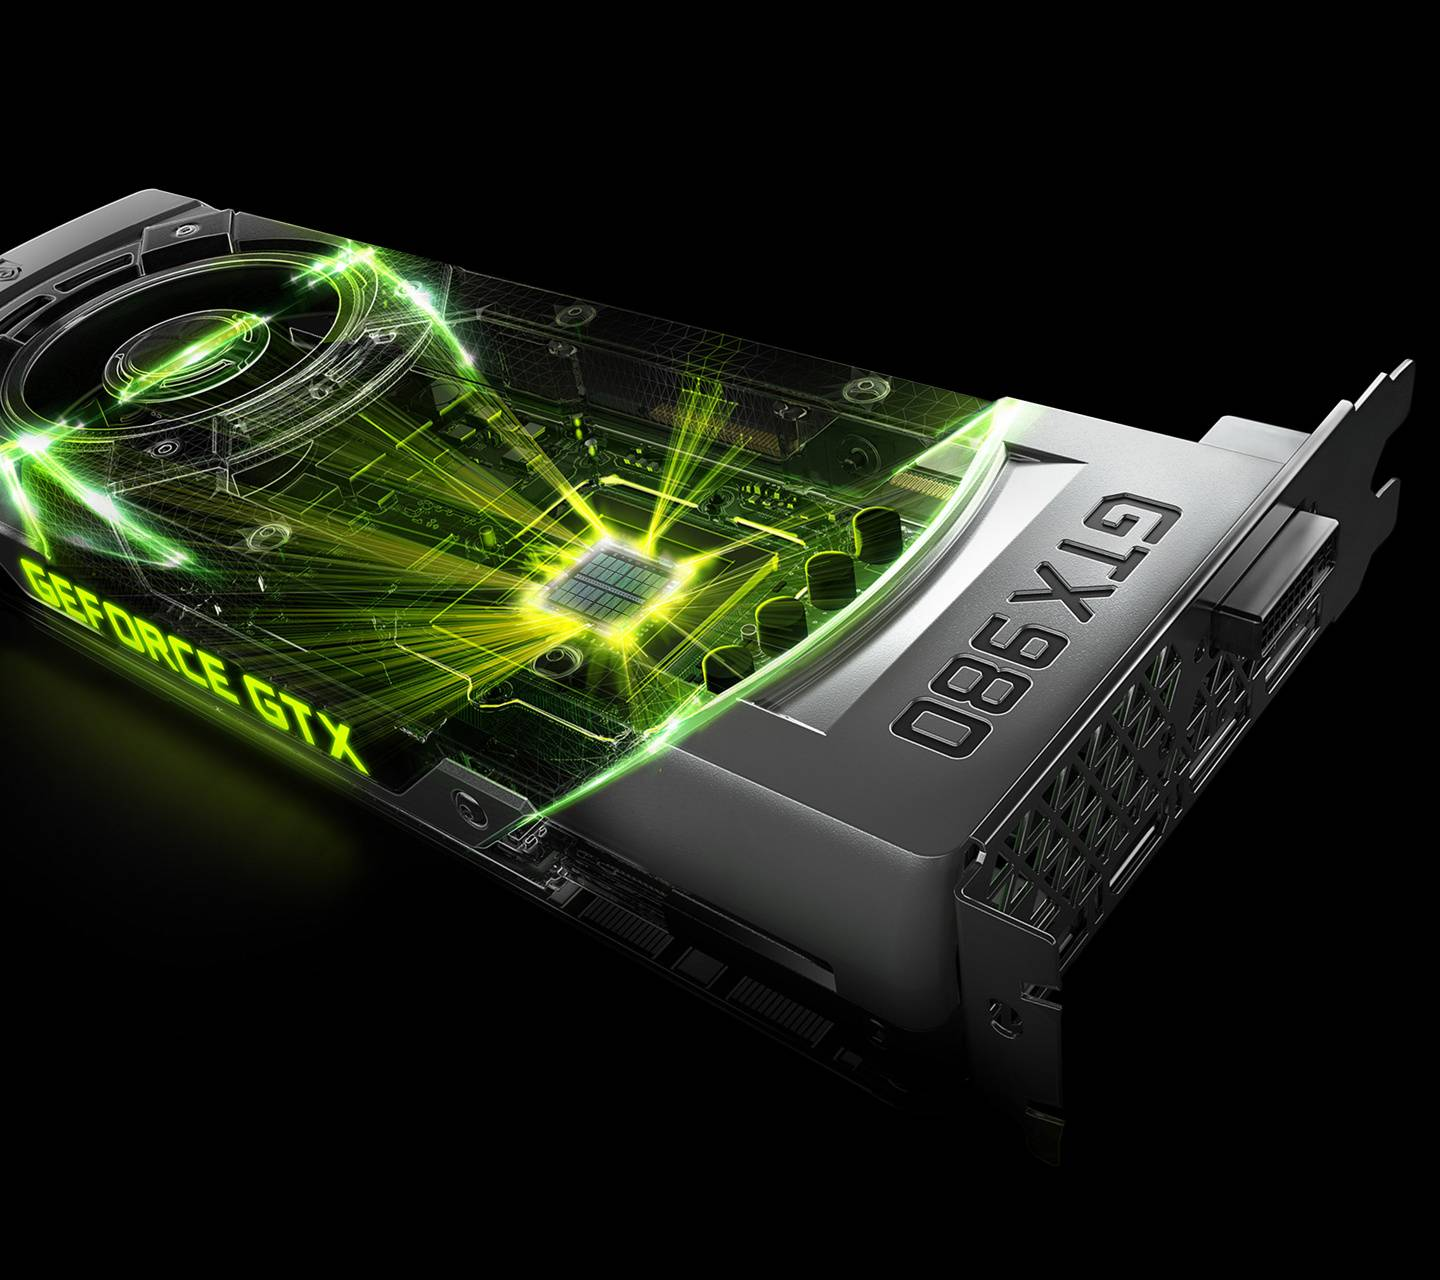 NvidiGeForce GTX 980